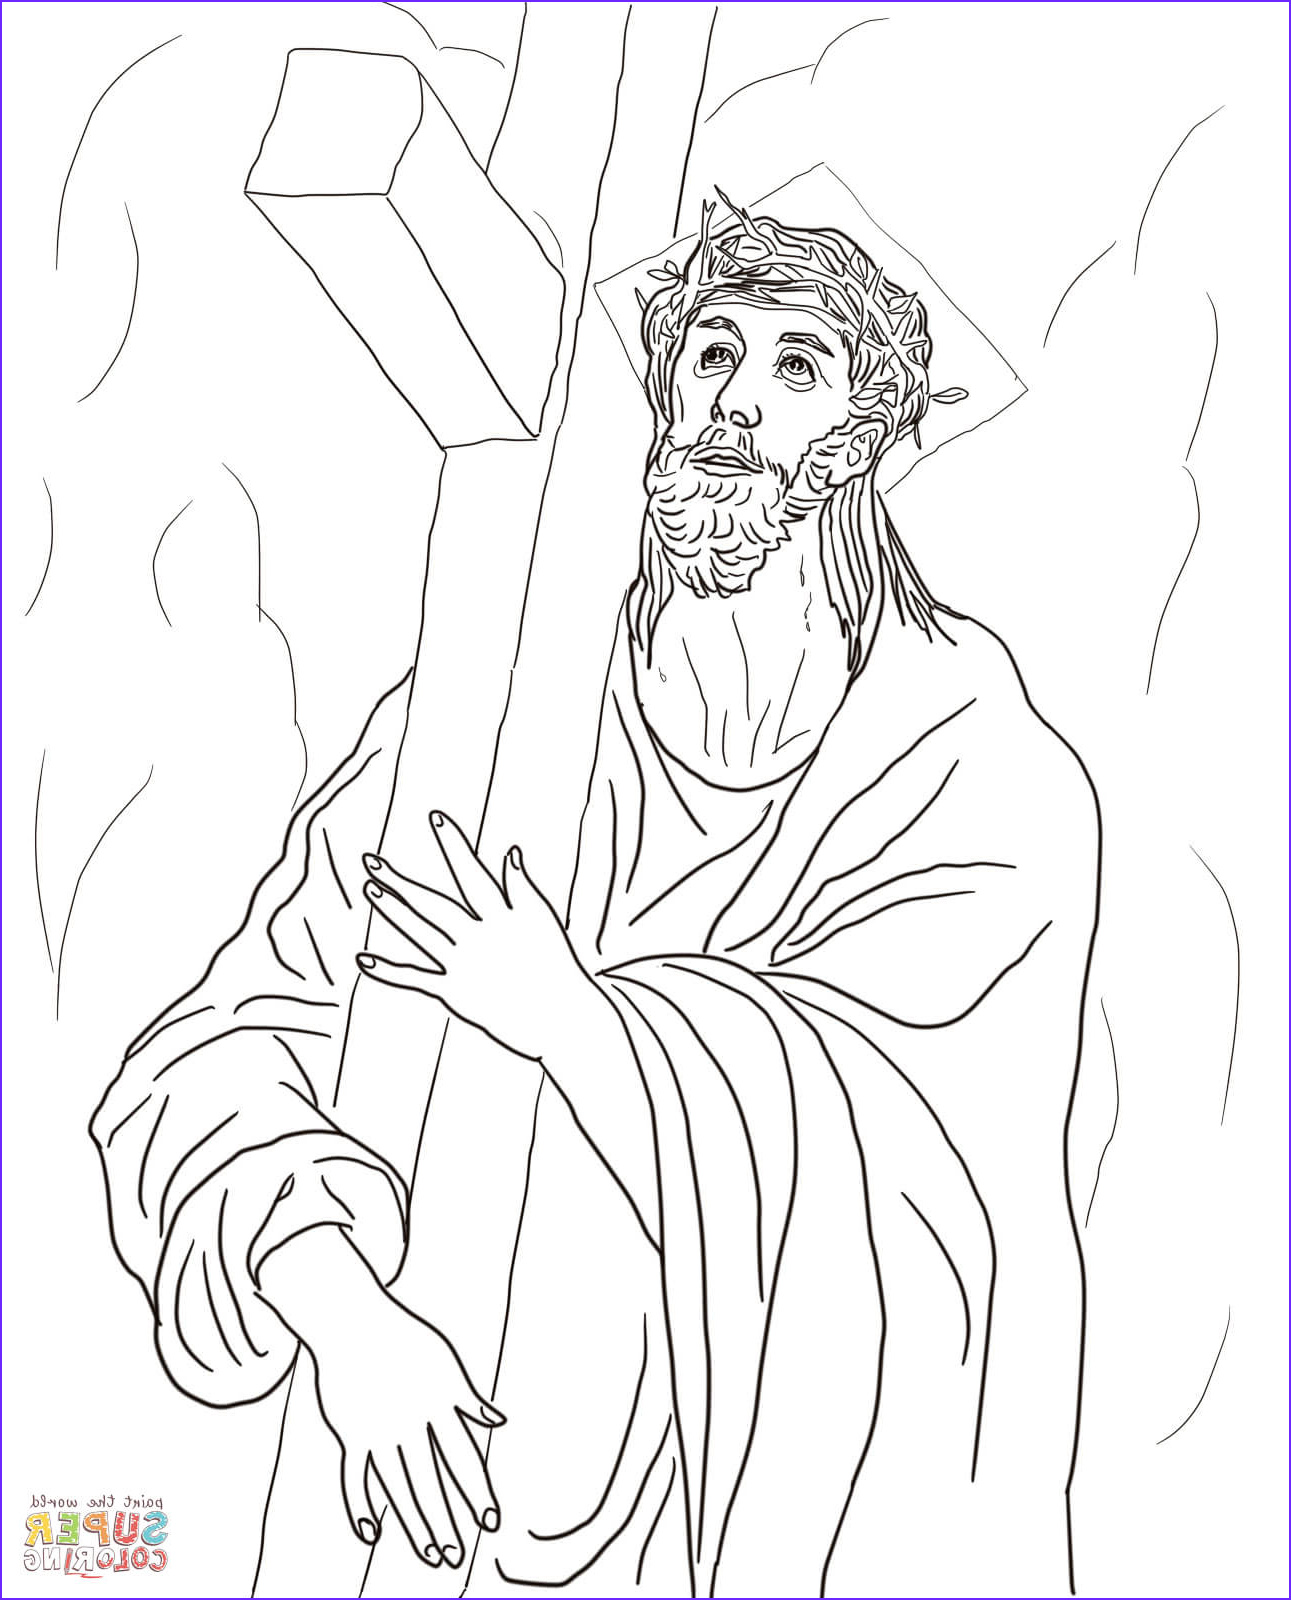 Stations Of the Cross Coloring Pages New Photography Second Station Jesus Carries His Cross Coloring Page